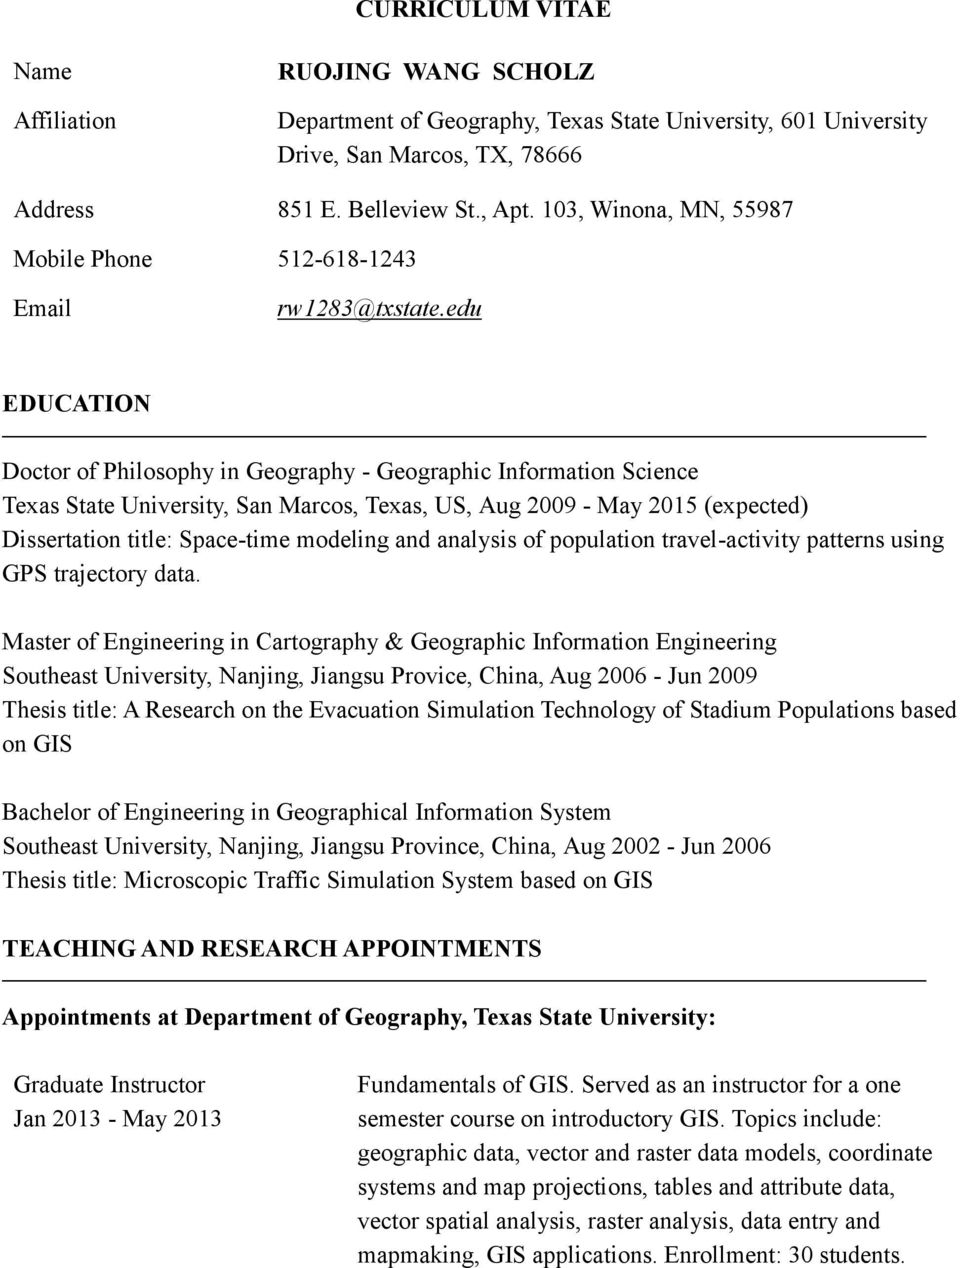 edu EDUCATION Doctor of Philosophy in Geography - Geographic Information Science Texas State University, San Marcos, Texas, US, Aug 2009 - May 2015 (expected) Dissertation title: Space-time modeling